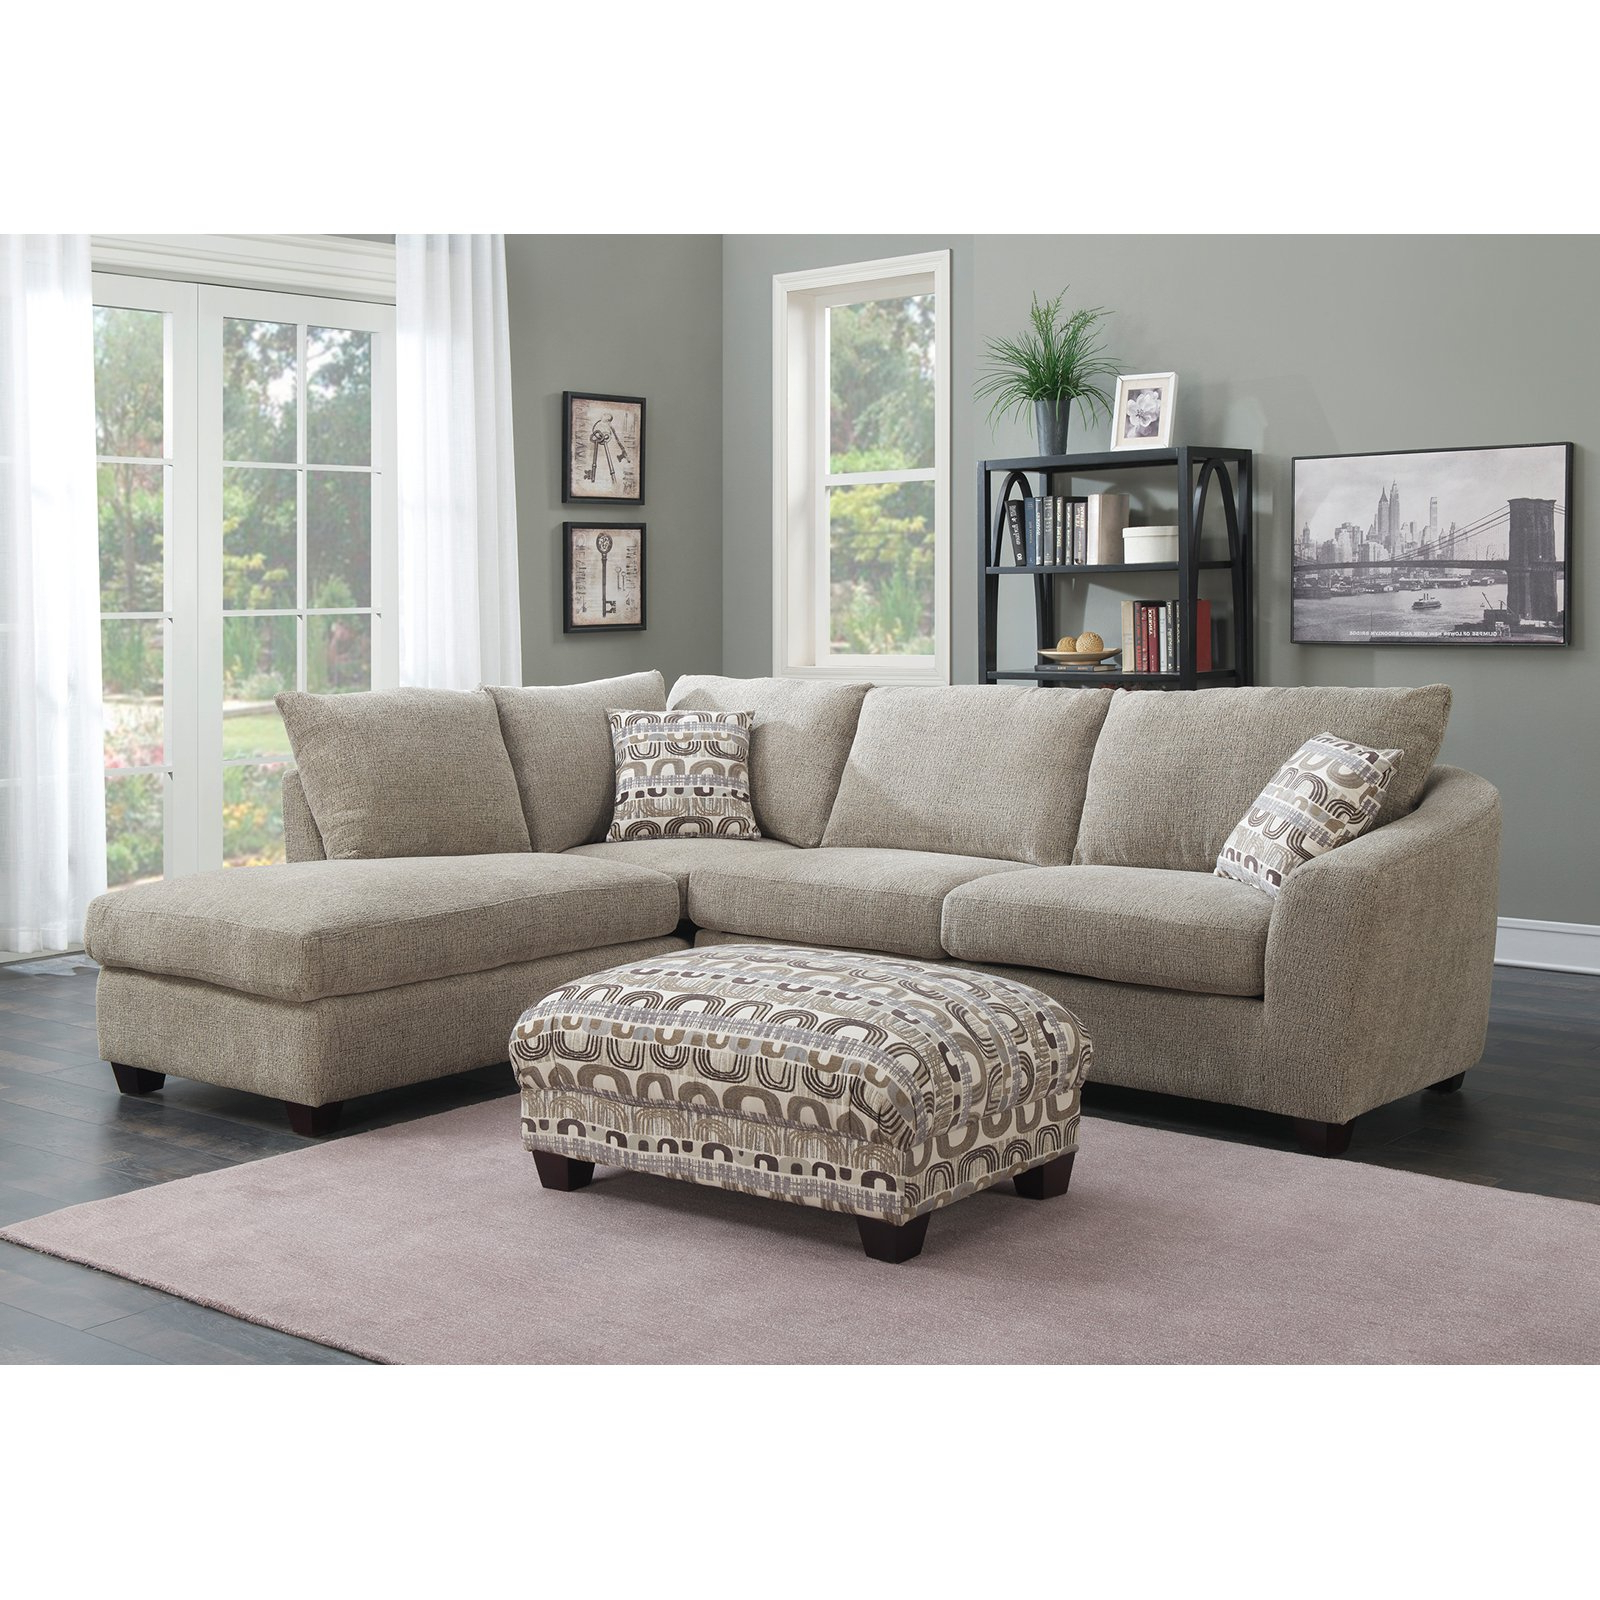 Most Up To Date 2 Piece Sectional With Chaise – Tidex Inside Delano 2 Piece Sectionals With Raf Oversized Chaise (View 16 of 20)